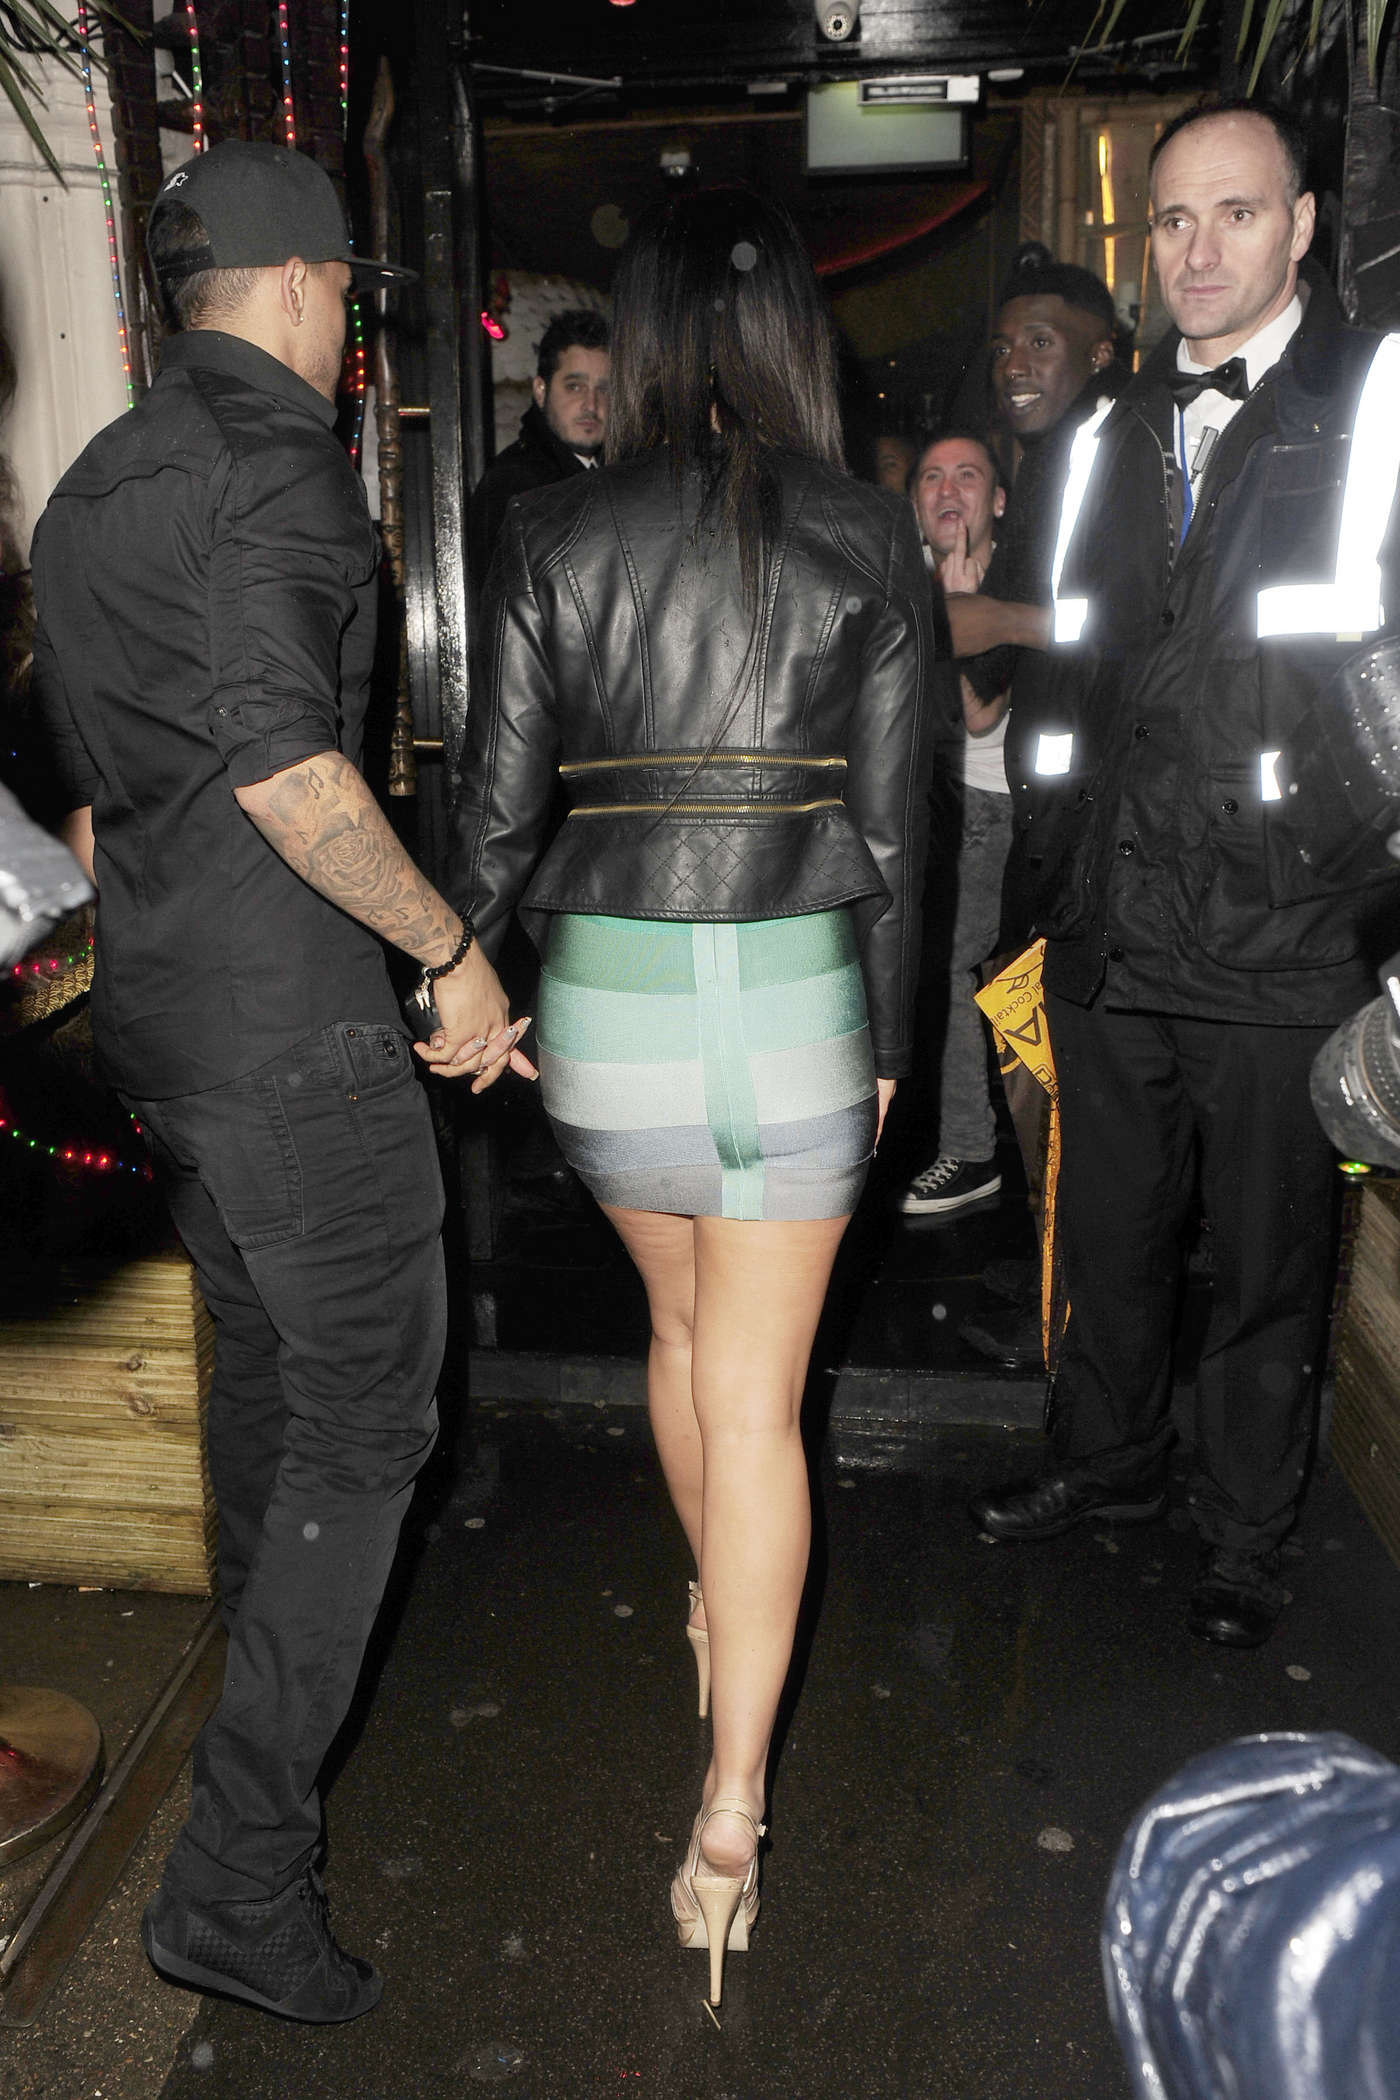 Tulisa Contostavlos In Tight Dress At Mahiki Nightclub -10 -2562